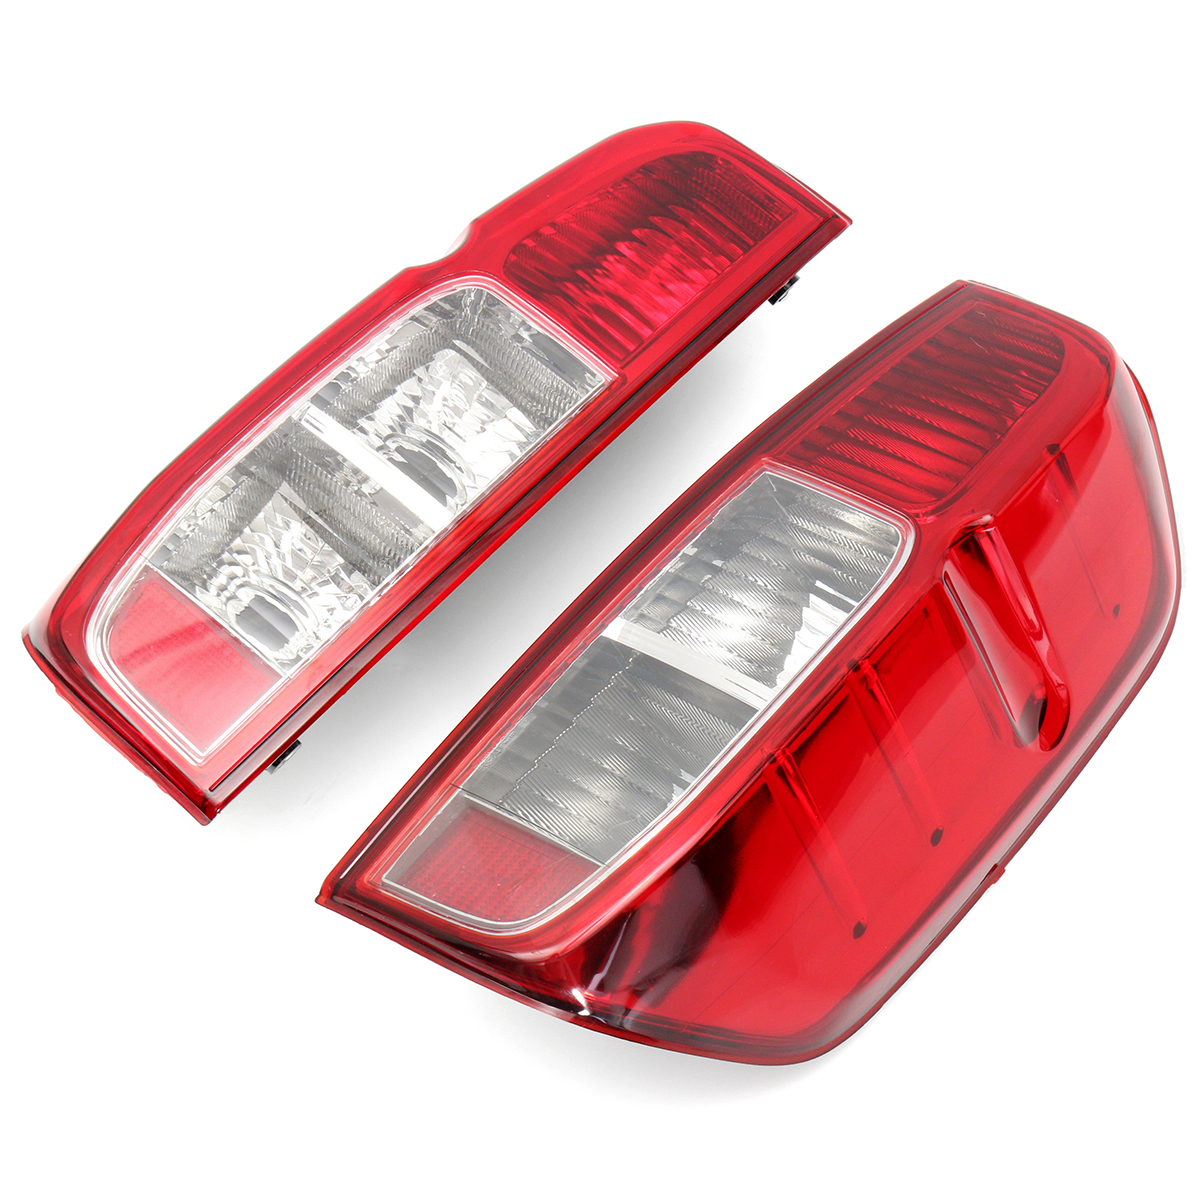 2Pcs LEFT/RIGHT Rear Tail Light Driver Passenger Side Lamp For Nissan NAVARA D40 2005-2015 1pcs black holder outer rear tail lamp taillight right passenger side 8330a622 for mitsubishi lancer evo 2006 2012